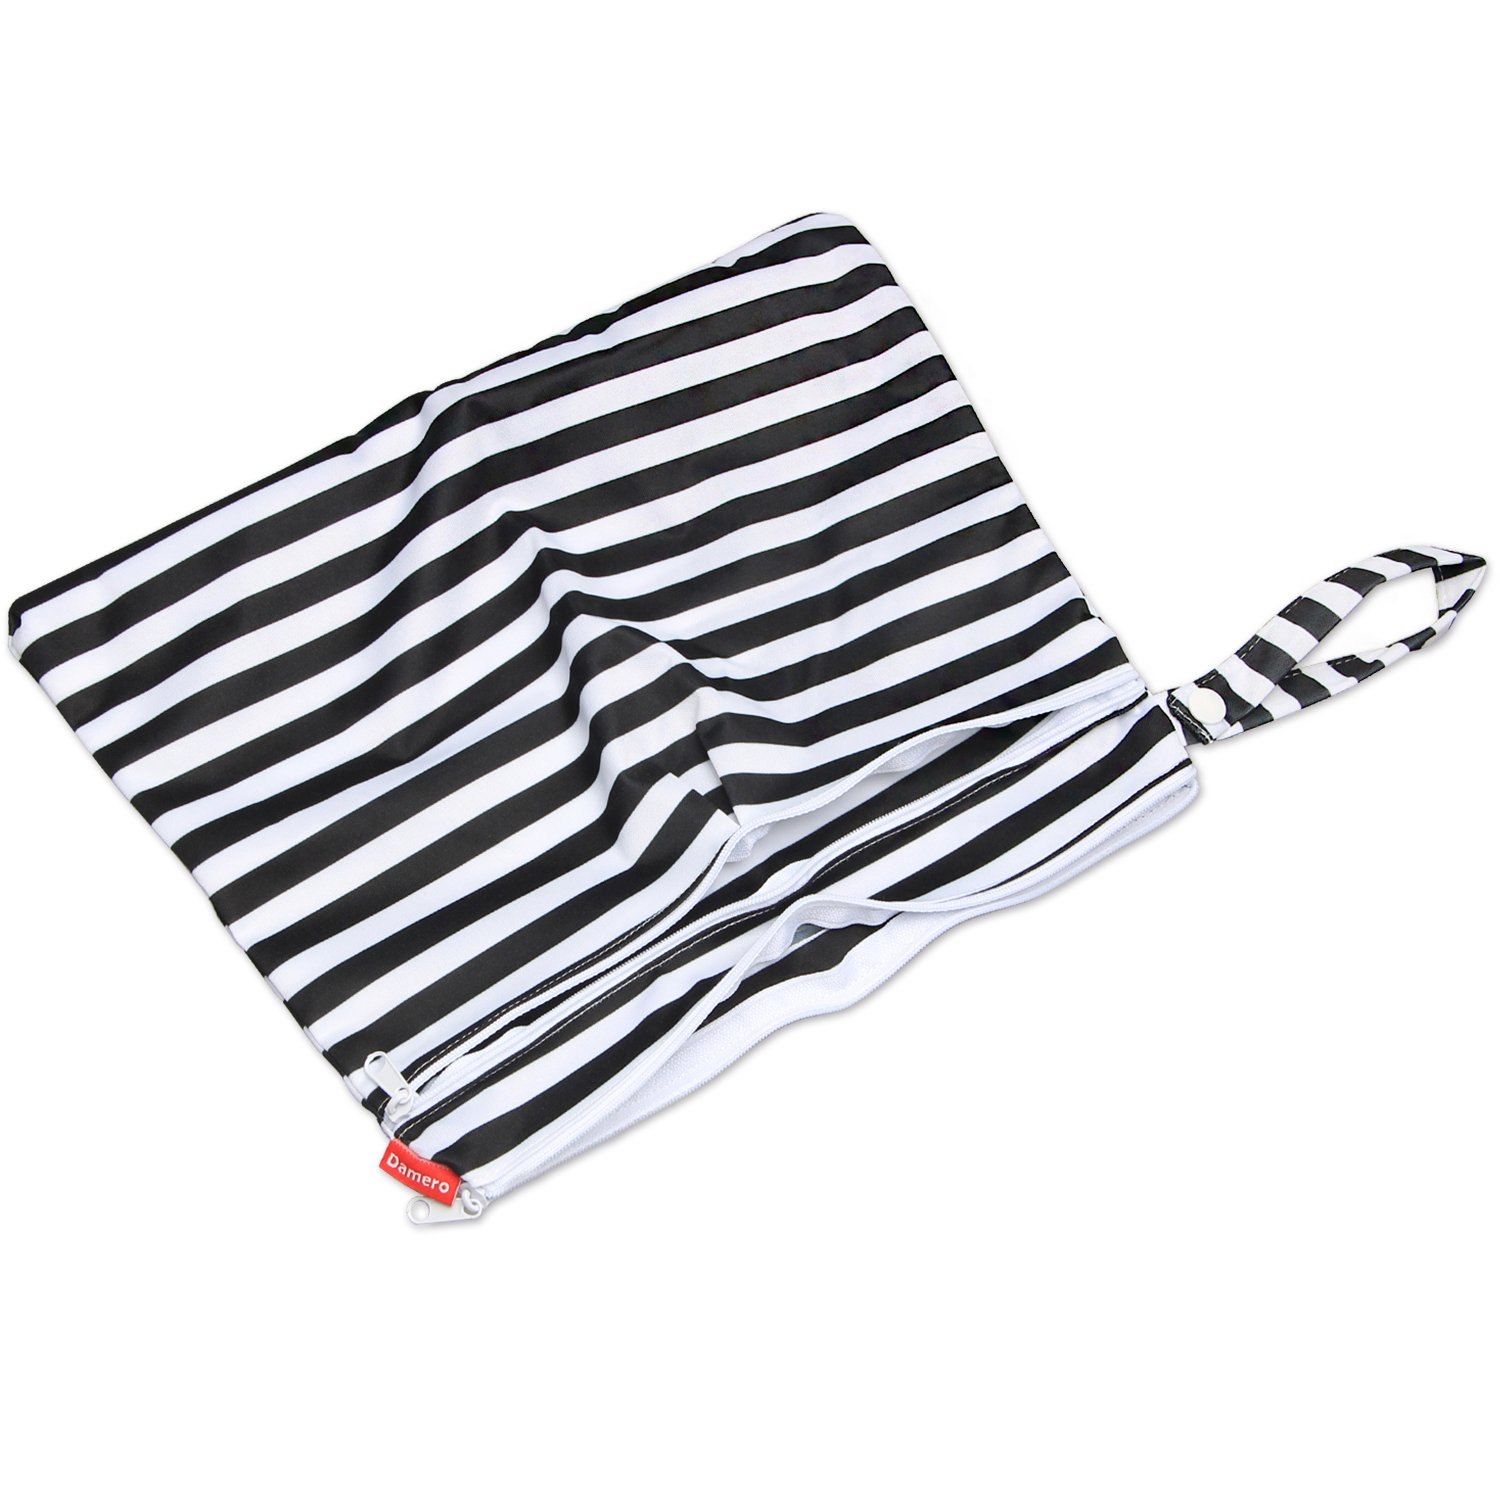 Travel Diaper Organiser Bag with Handle Dirty Clothes and More Damero Baby Wet and Dry Cloth Diaper Bag Double Zipper Compartments for Babys Nappies Small, Black Strips